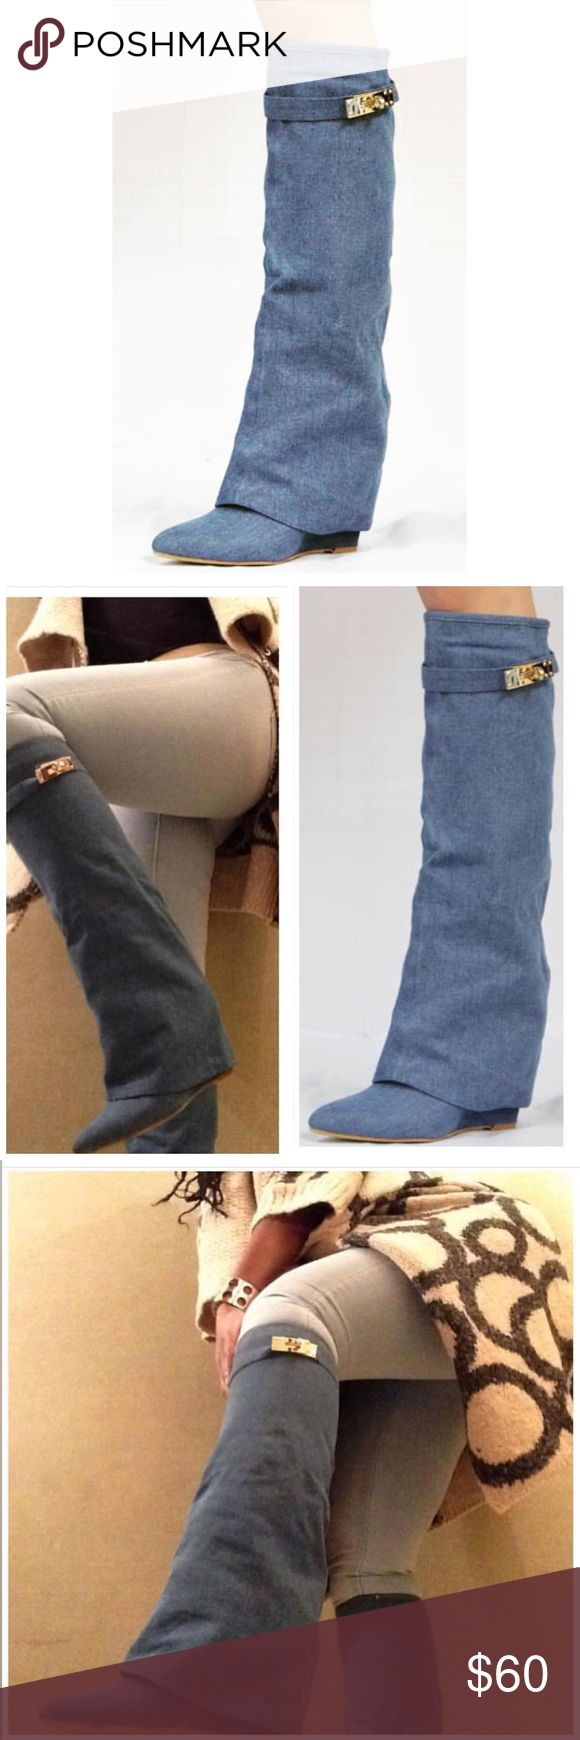 """Denim wedge boots 3"""" heel denim pull on wedge heel boots. Gold hardware. True to size Shoes Wedges"""